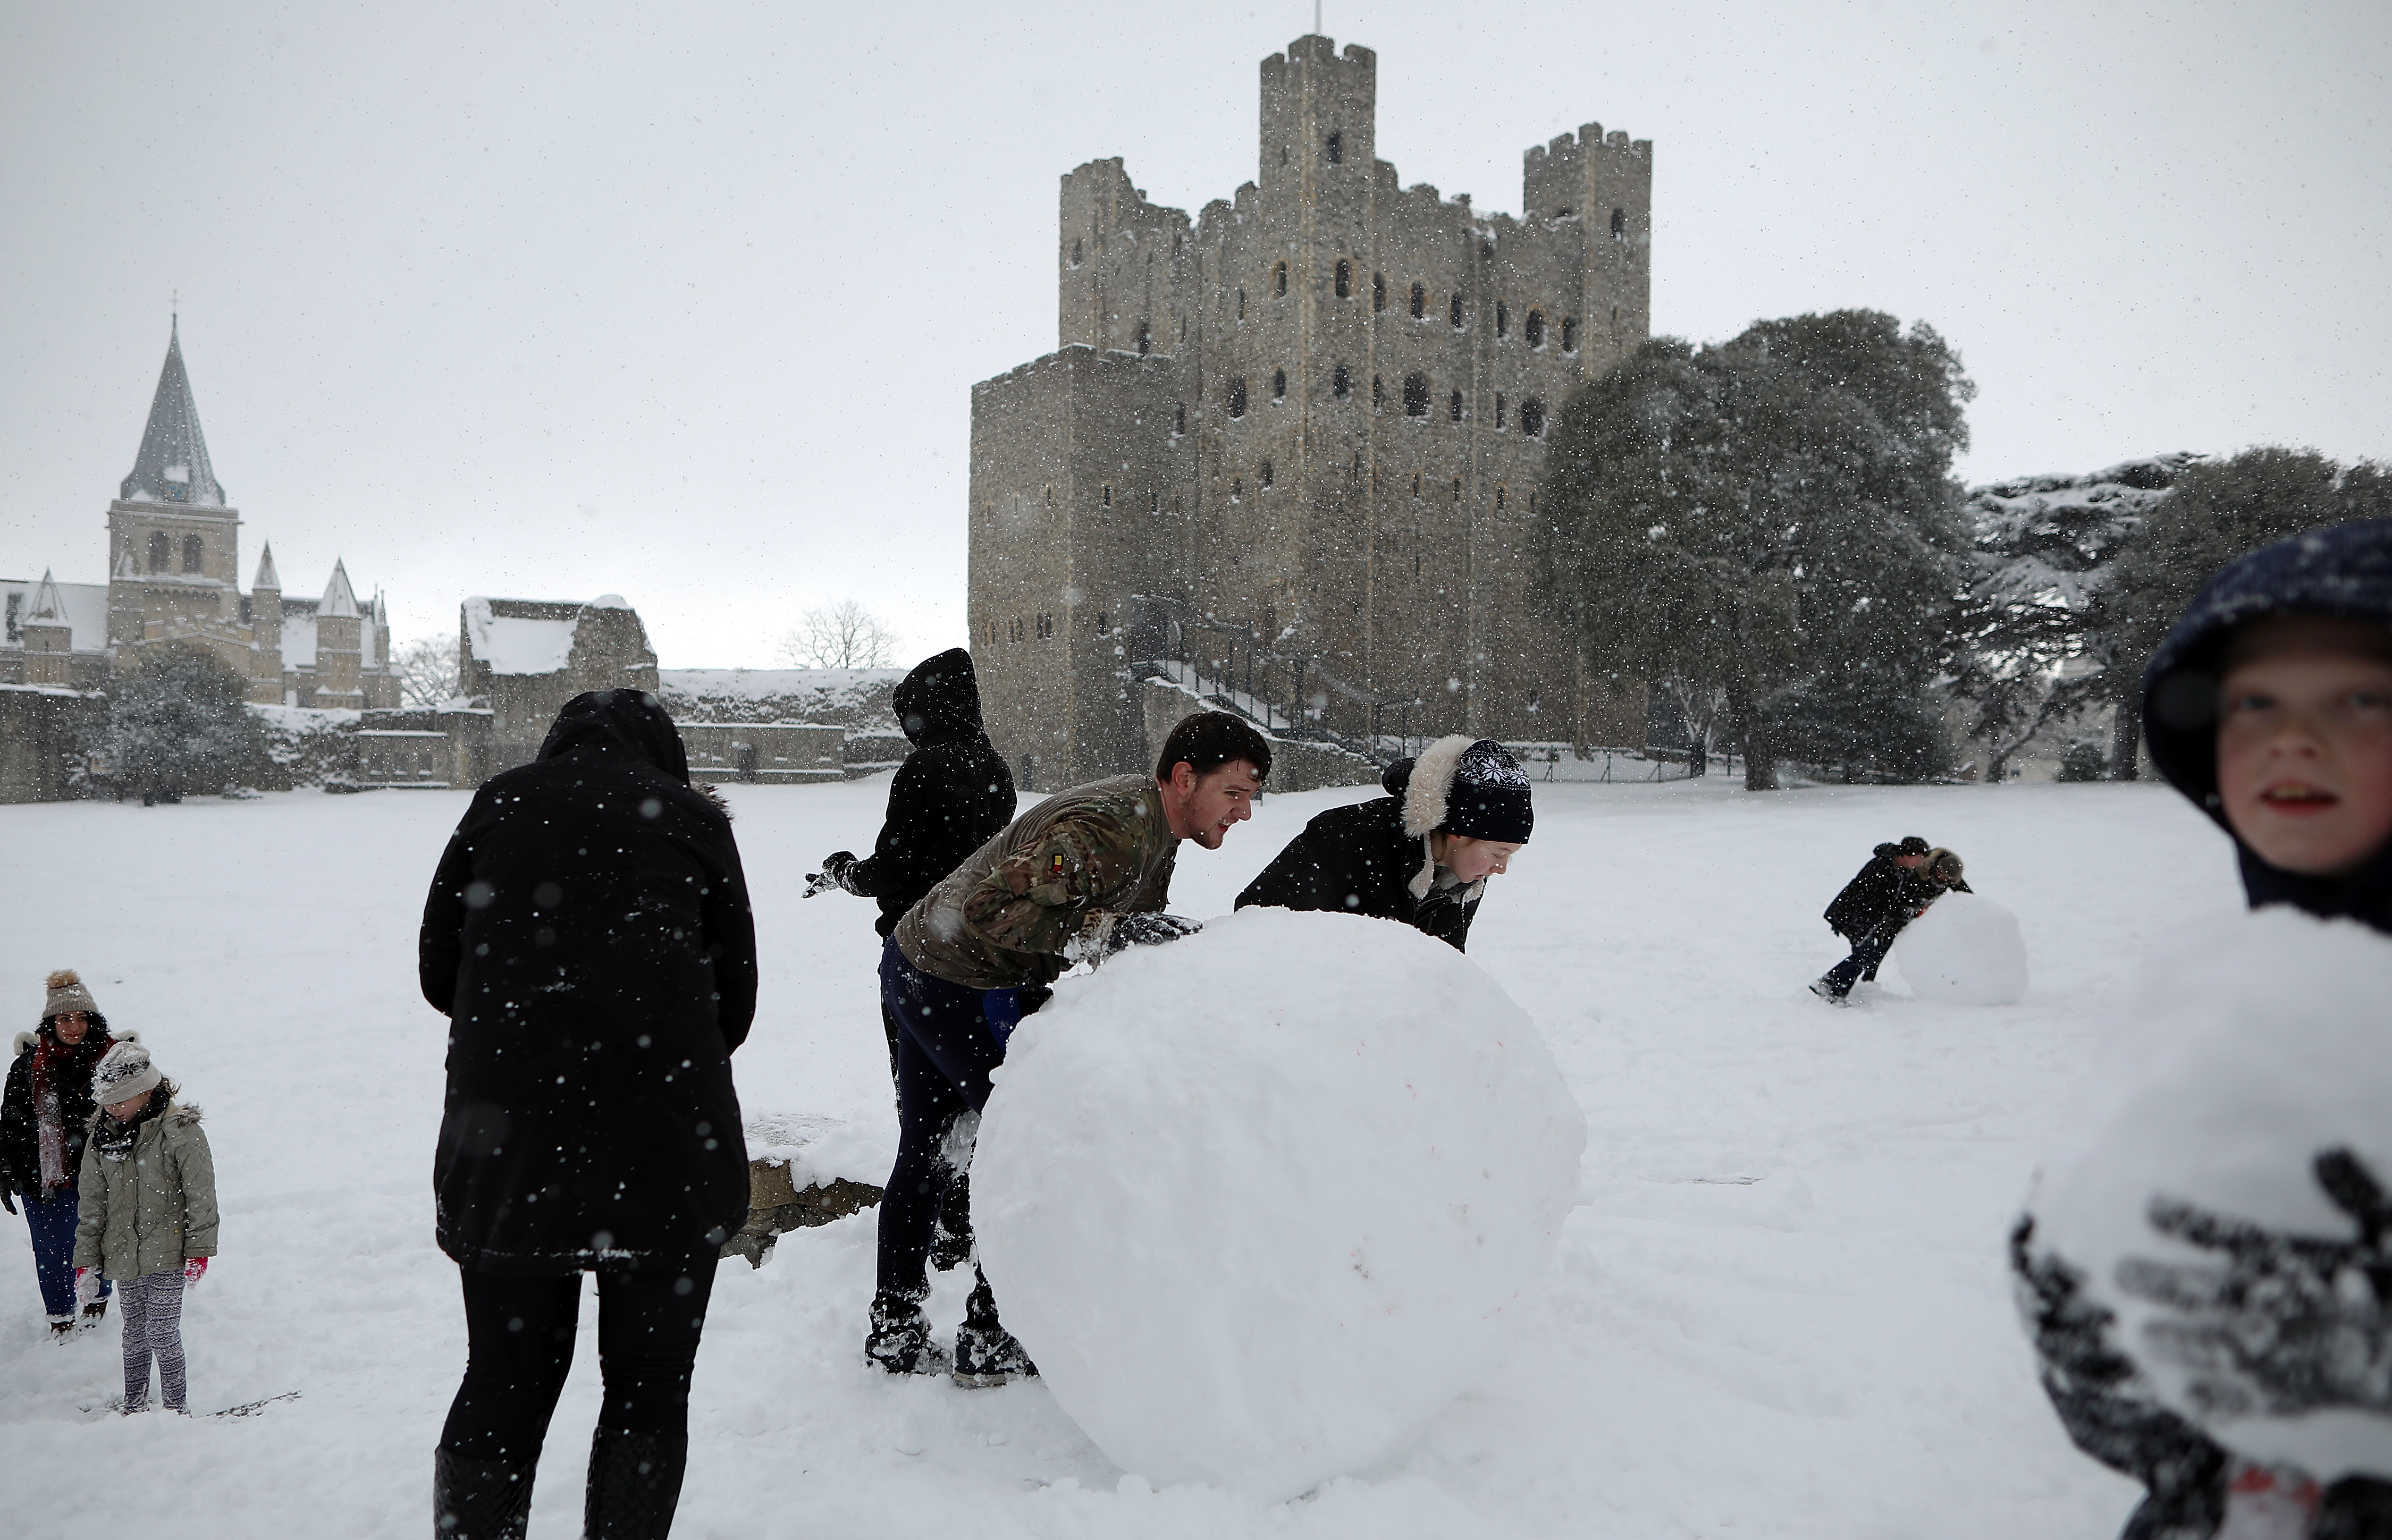 Cold Weather Front From Siberia Brings Snow Across The UK